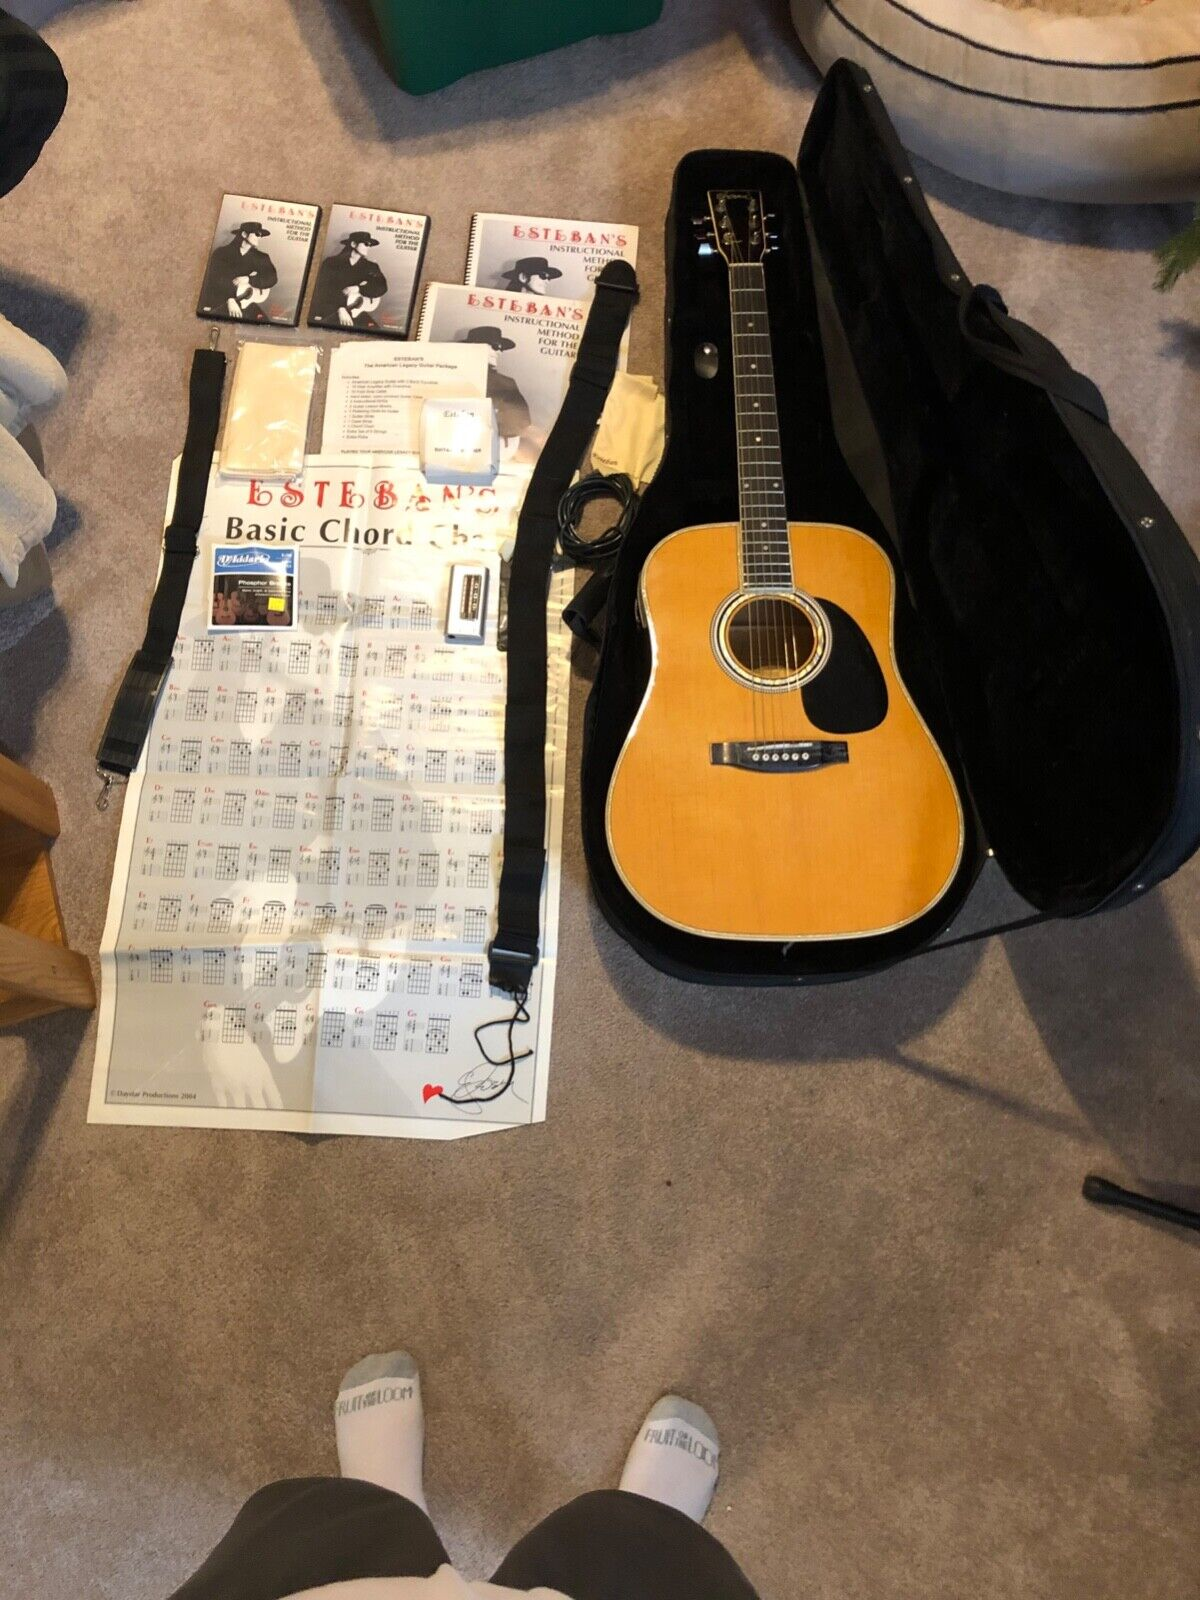 Esteban Guitar Package : esteban, guitar, package, Esteban, American, Legacy, Al-100, Right-handed, 6-string, Acoustic, Electric, Guitar, Online